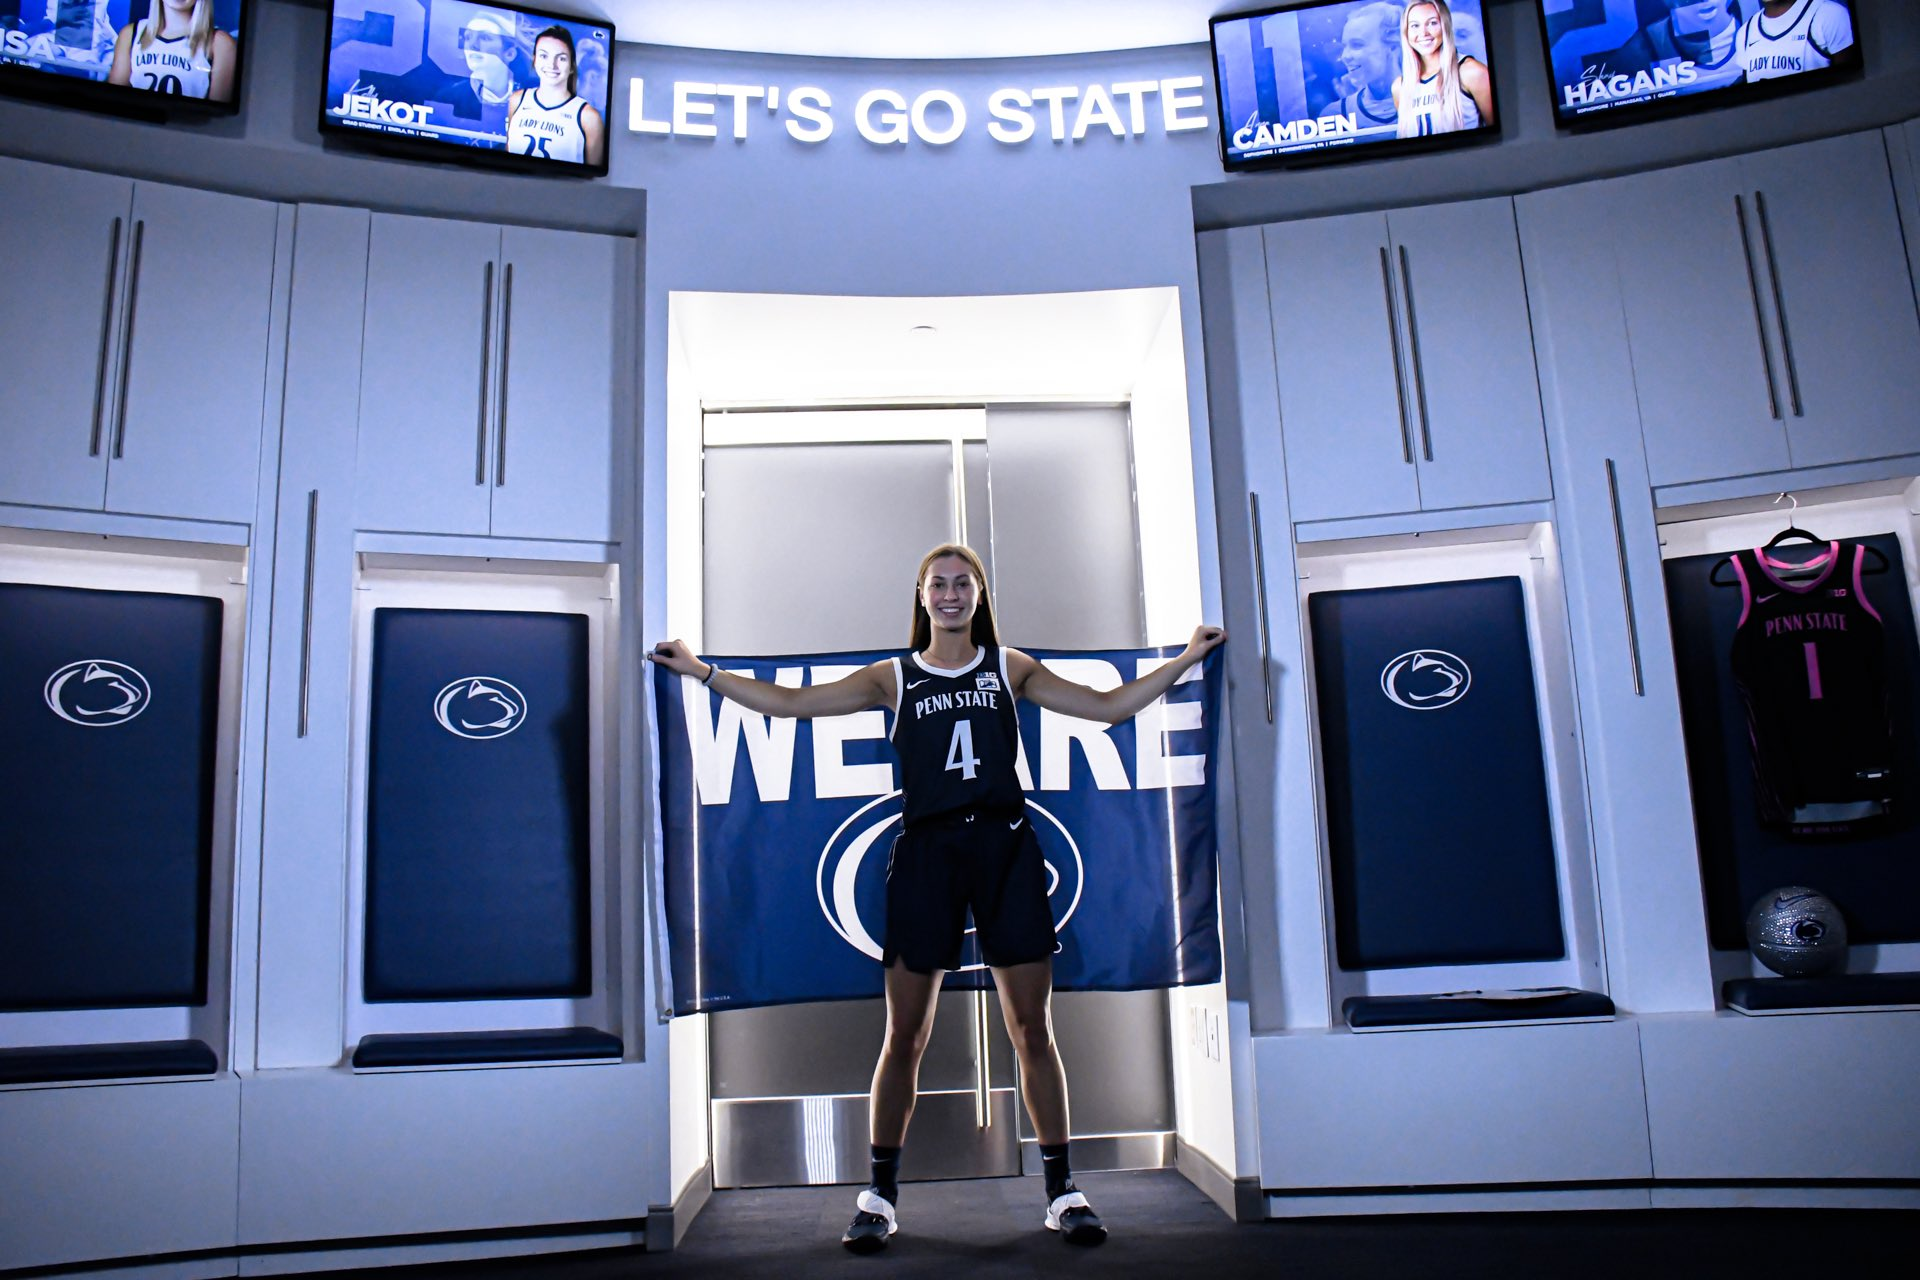 St. Mary's star Ciezki commits to Penn State